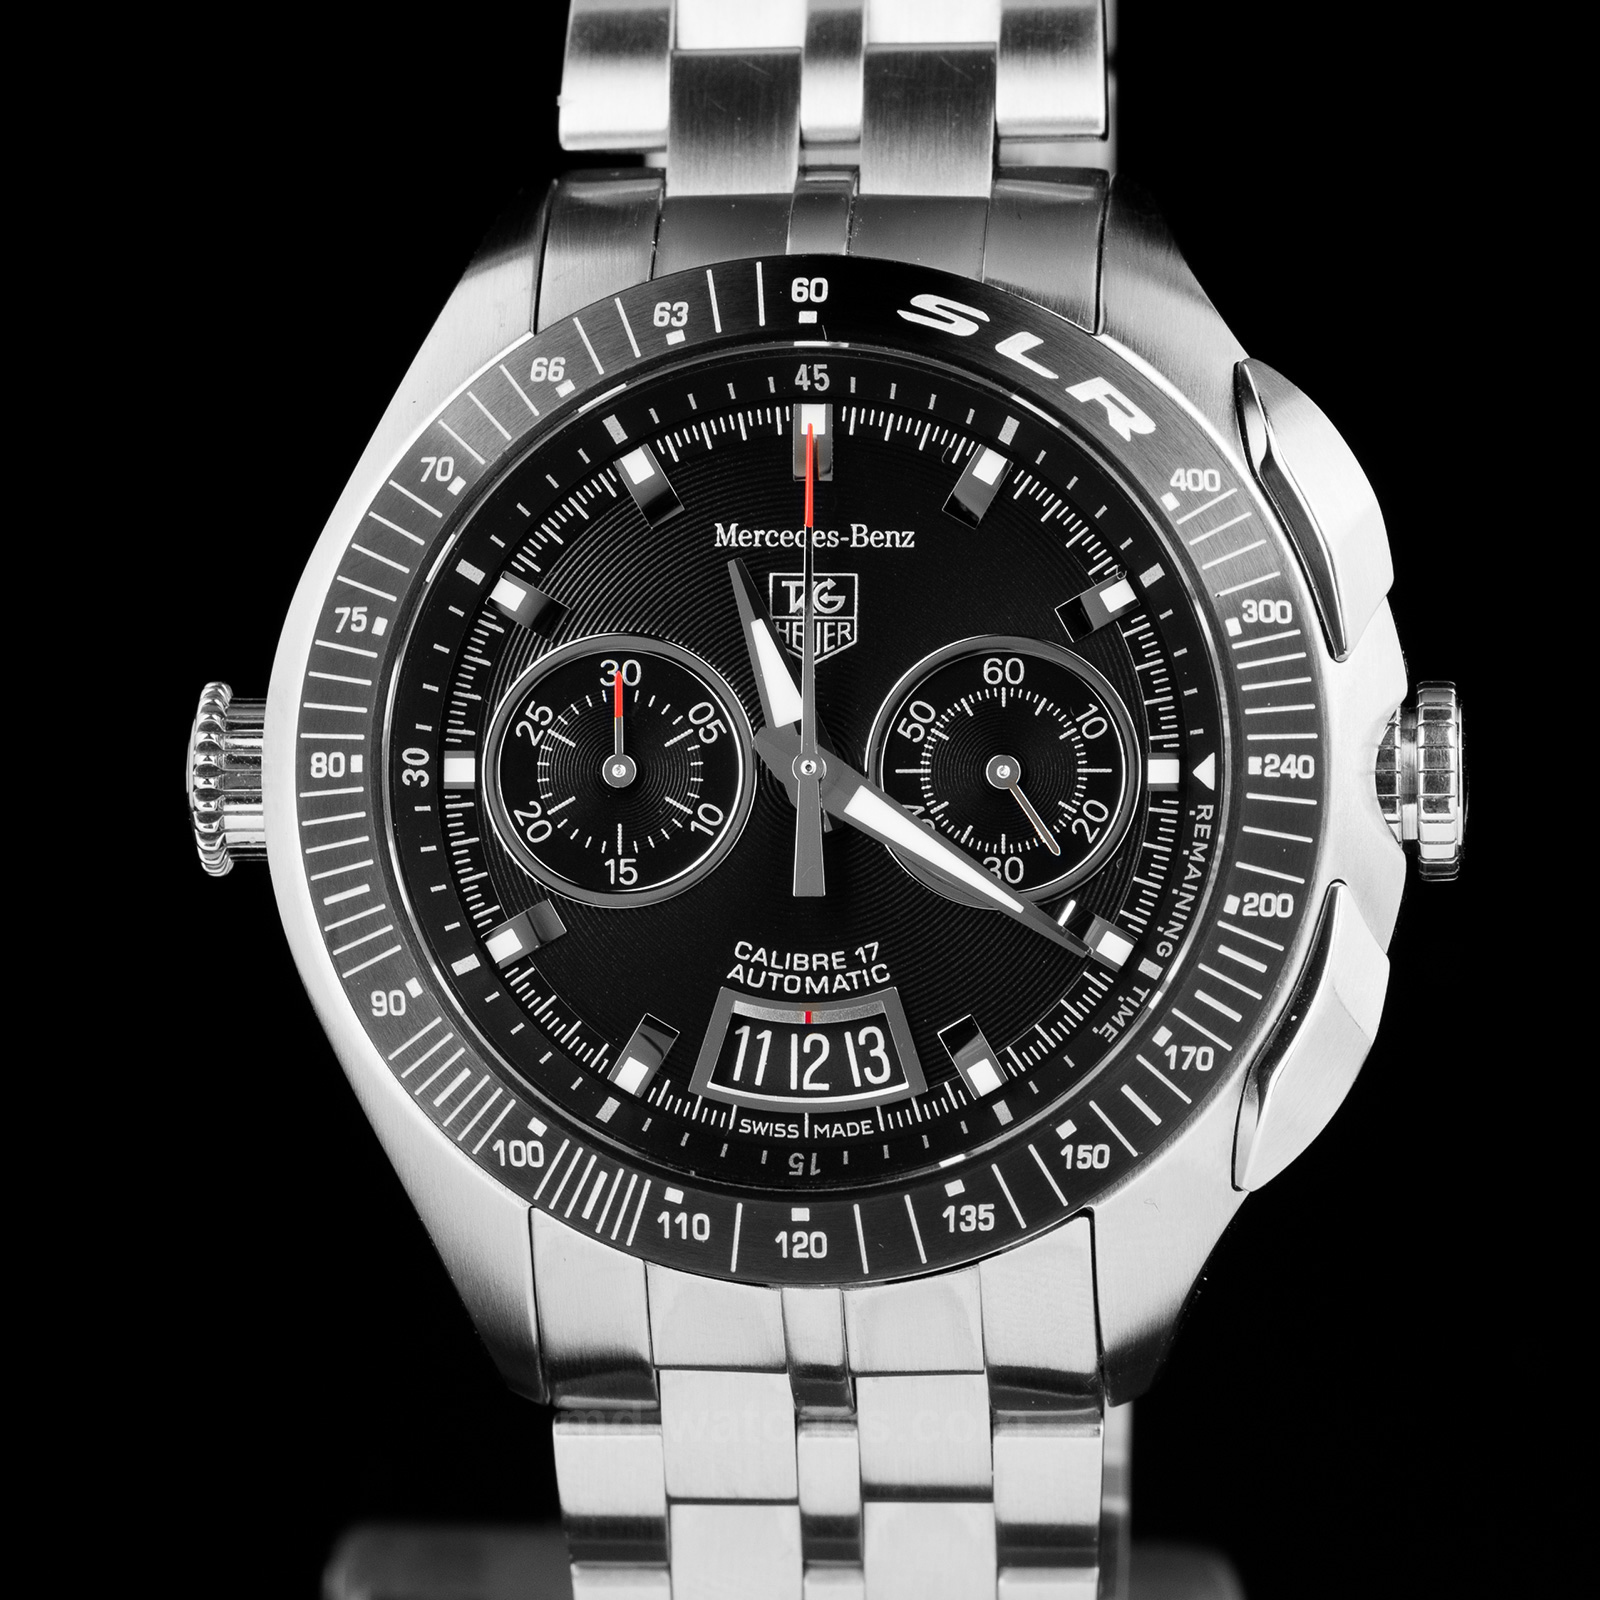 Tag Heuer Slr For Mercedes Benz Limited Edition Of 3 500 Pieces Ref Cag2111 Bao253 45mm